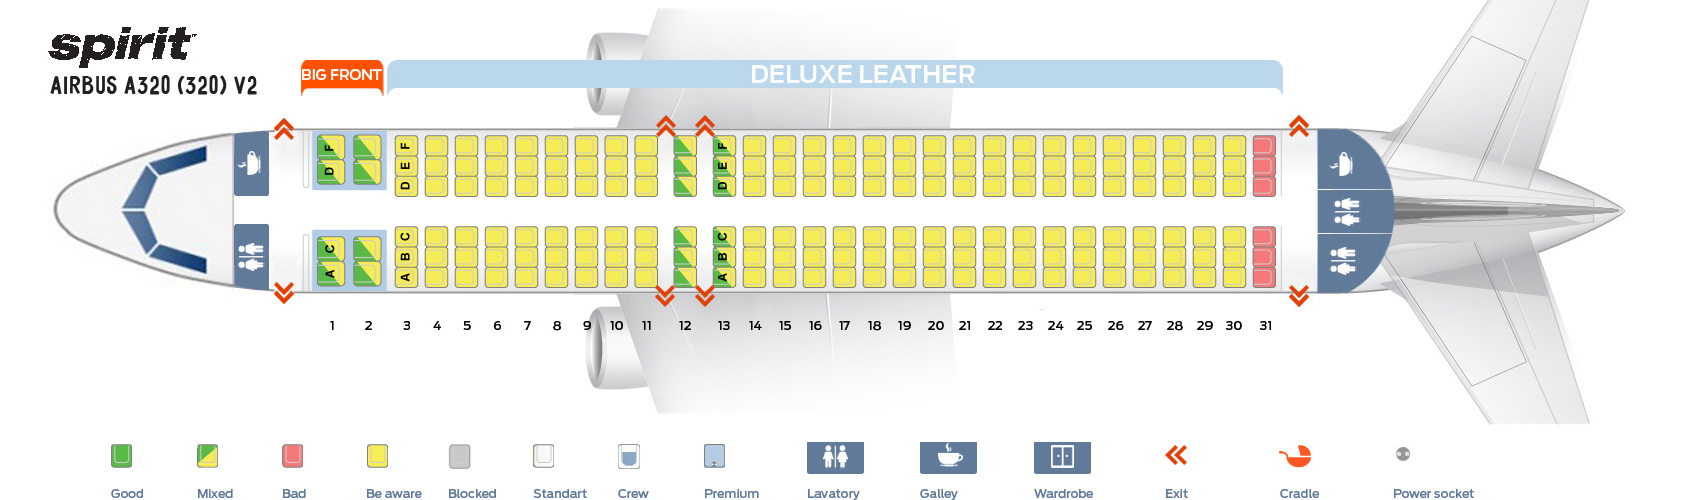 Seat Map Airbus A320-200 V2 Spirit Airlines